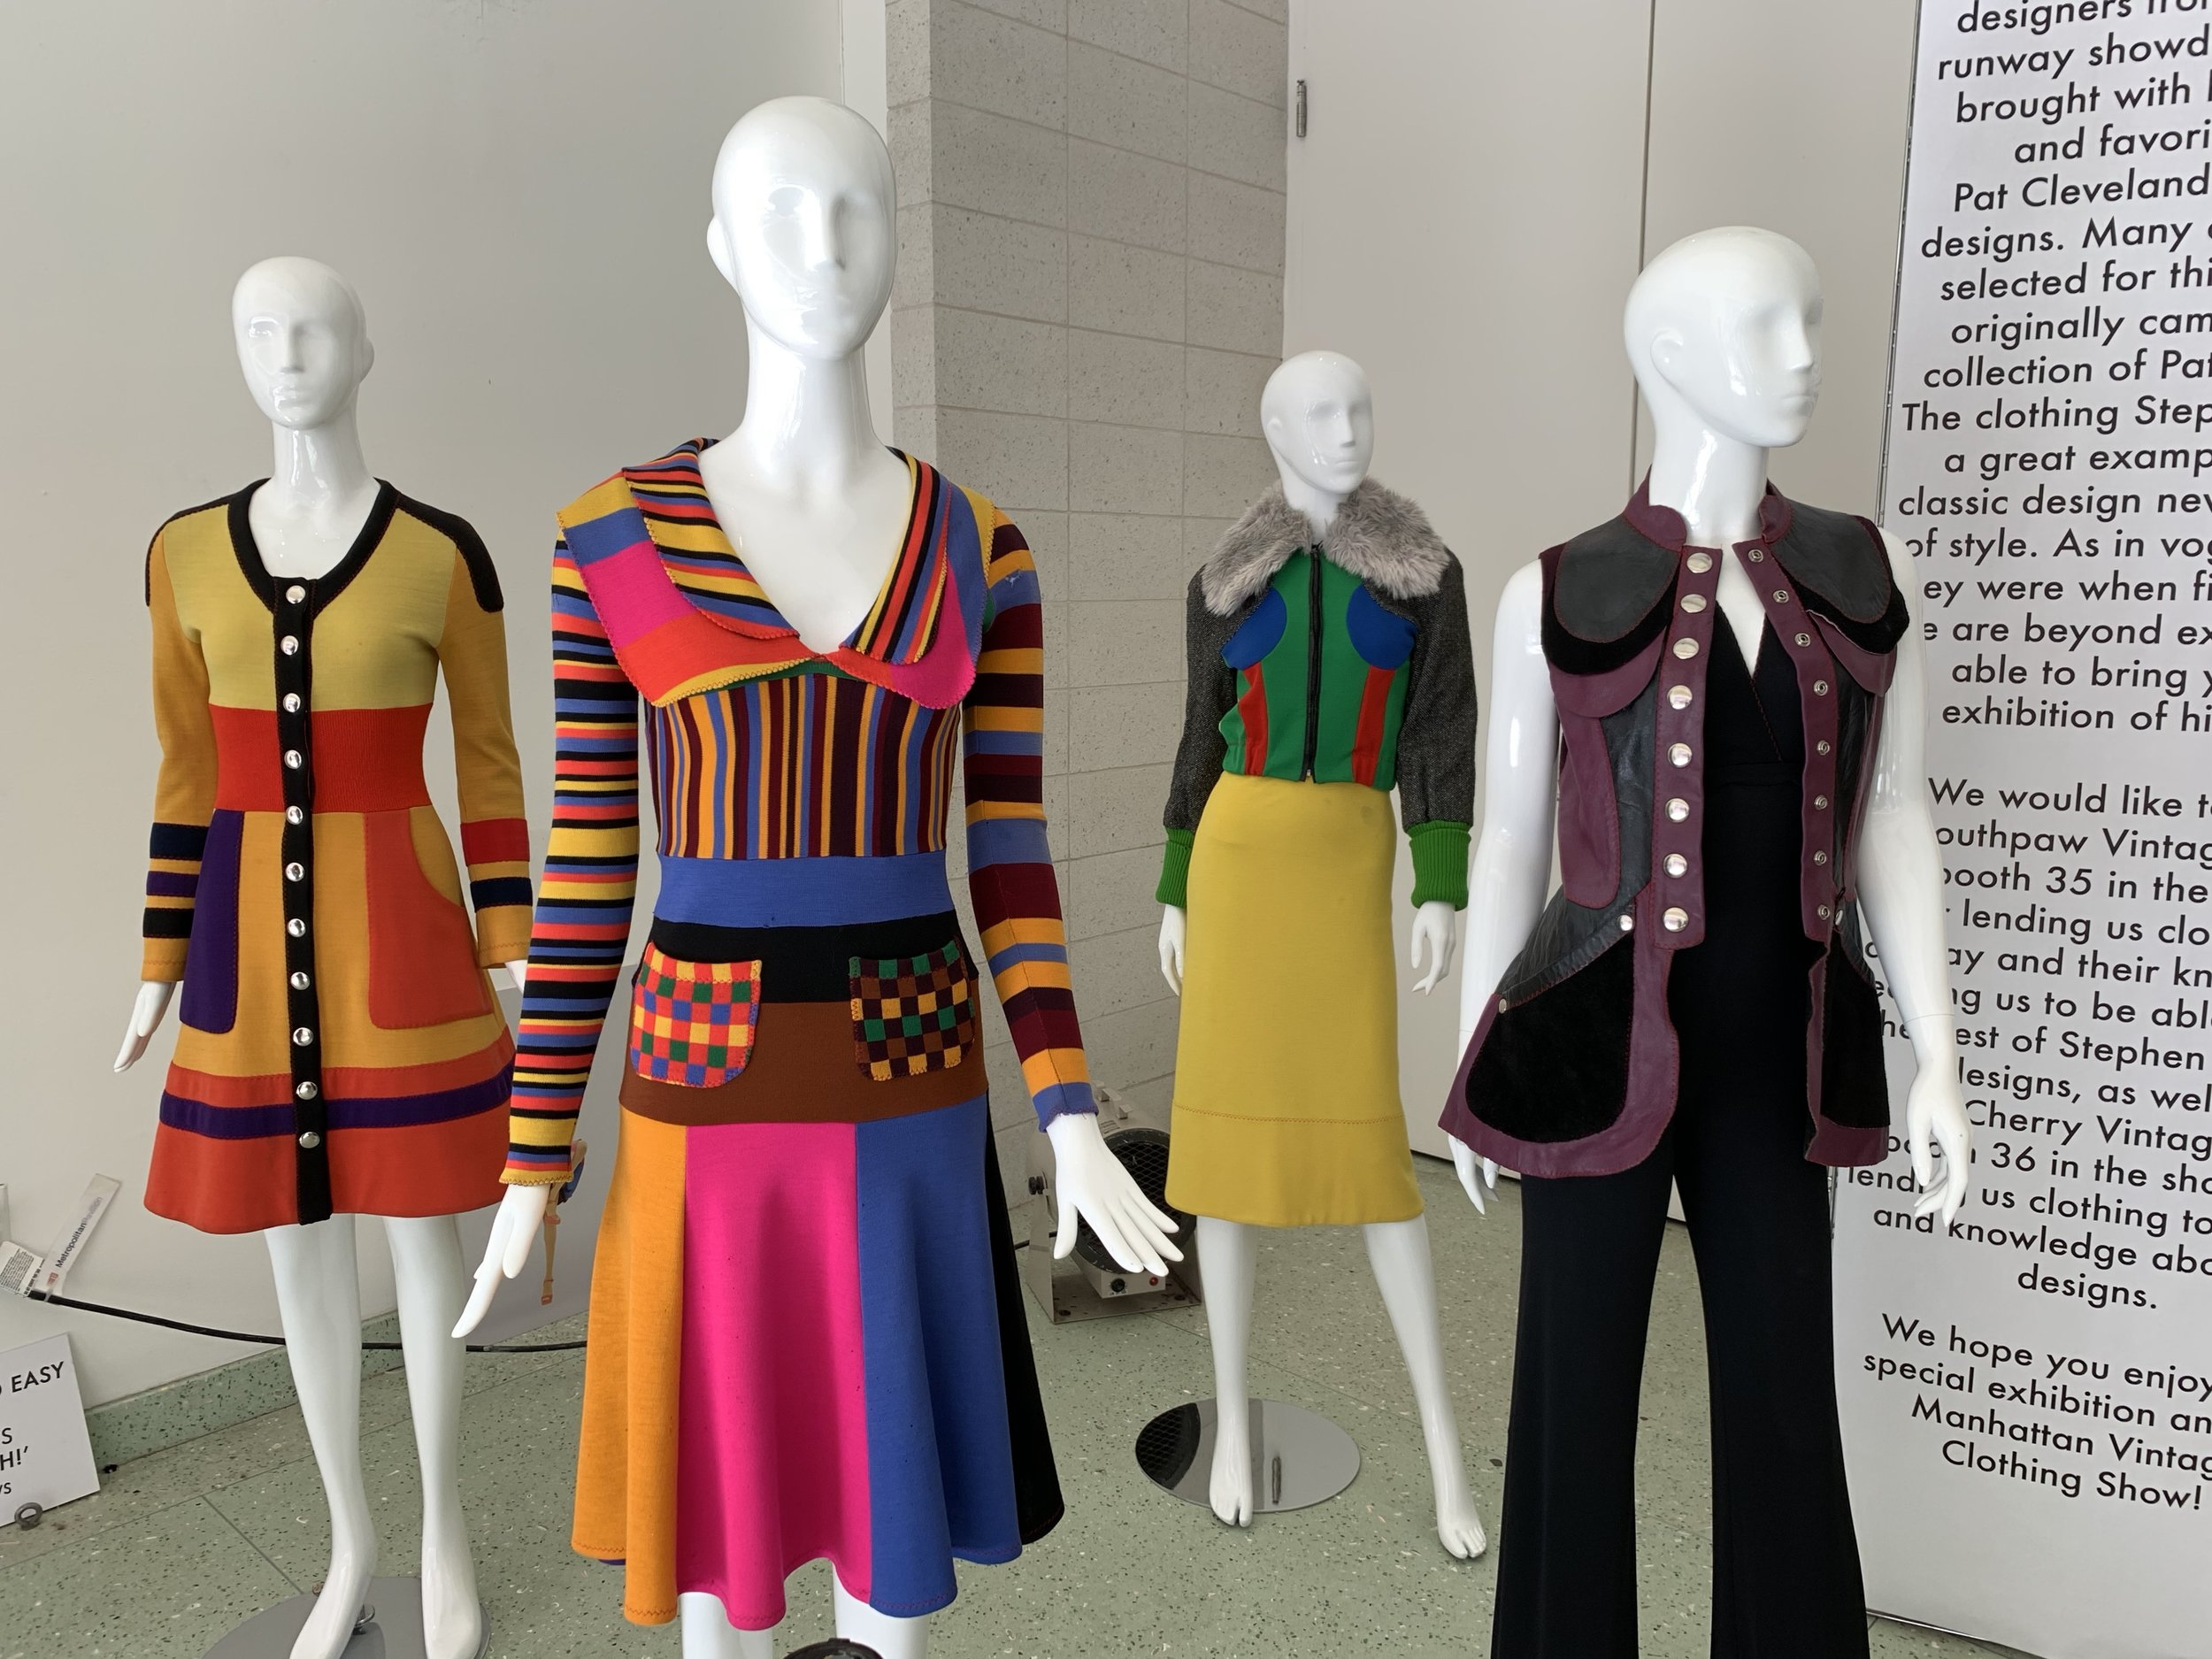 2nd dress (from left to right) is the look worn by the model Pat Cleveland.